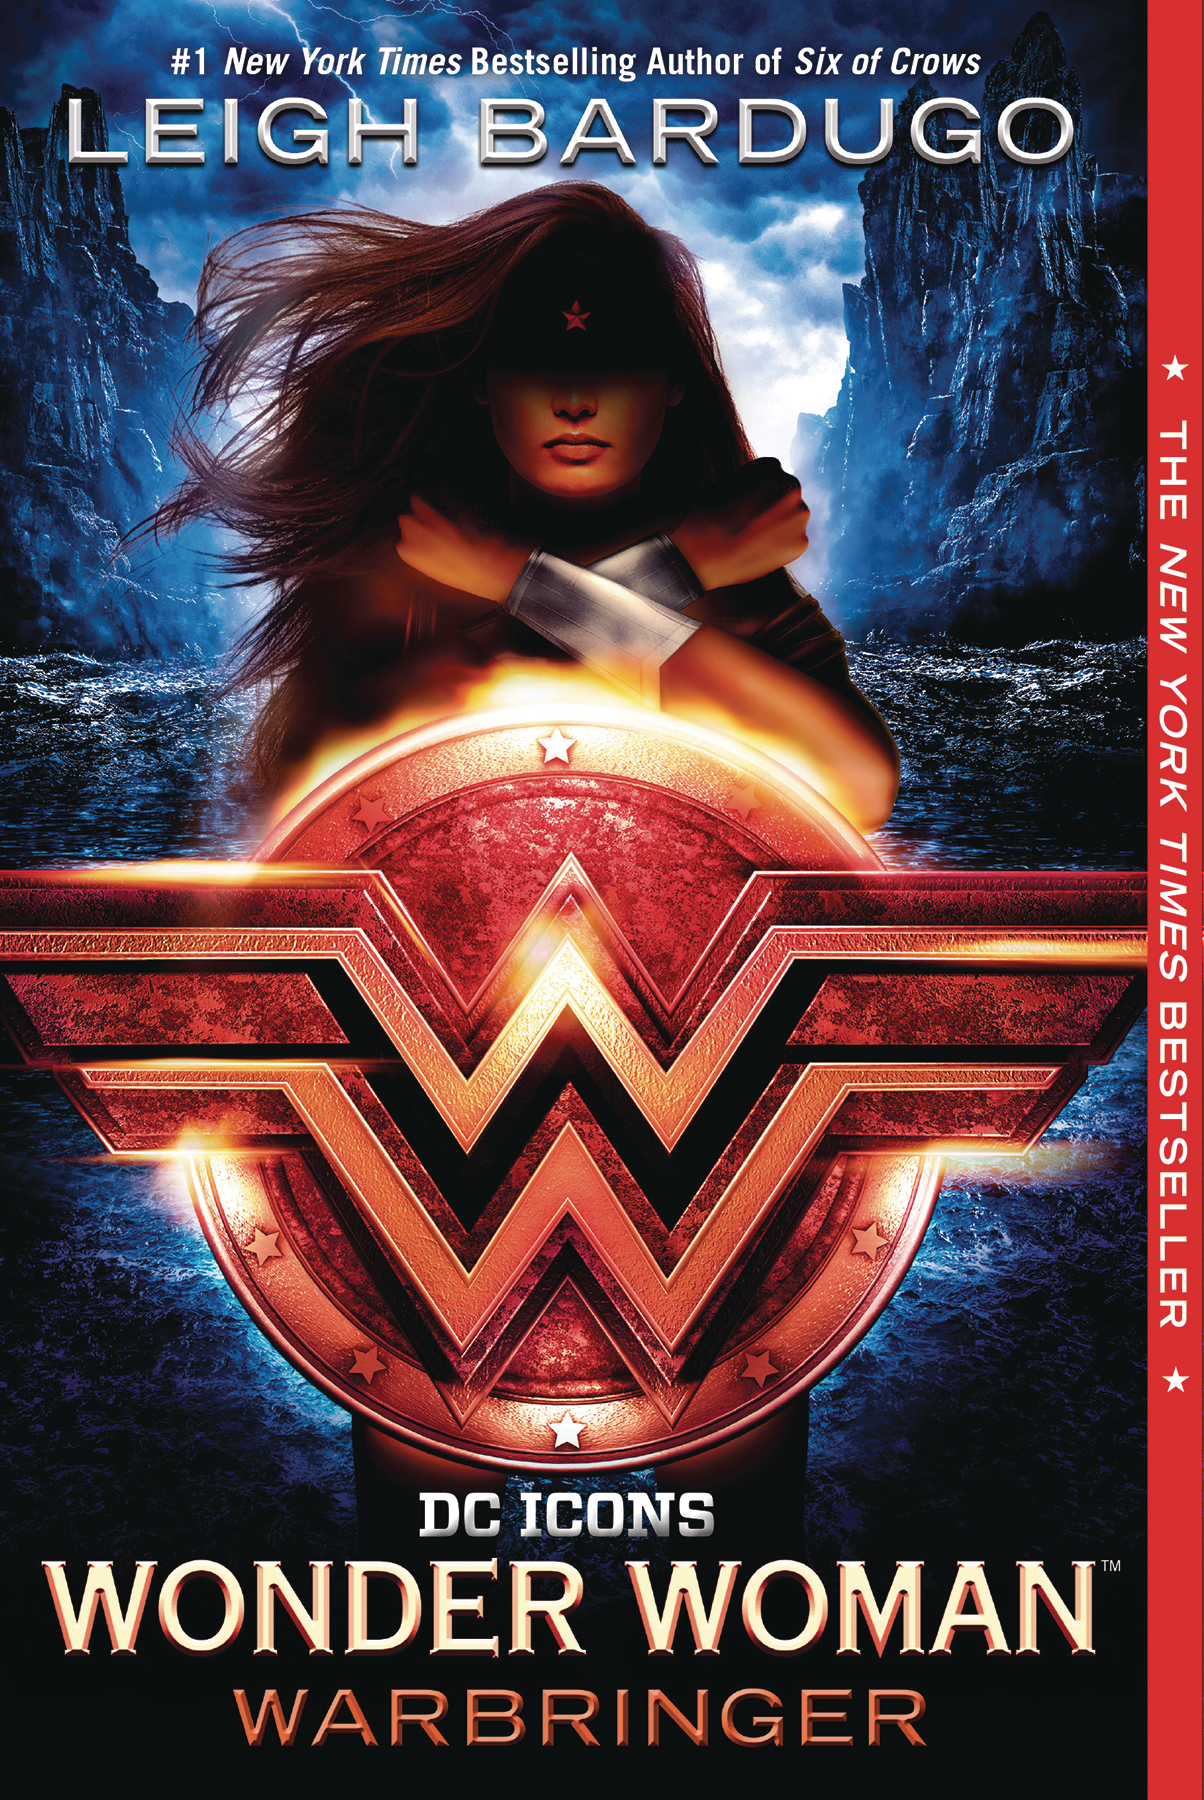 WONDER WOMAN WARBRINGER (Leigh Bardugo) SC NOVEL